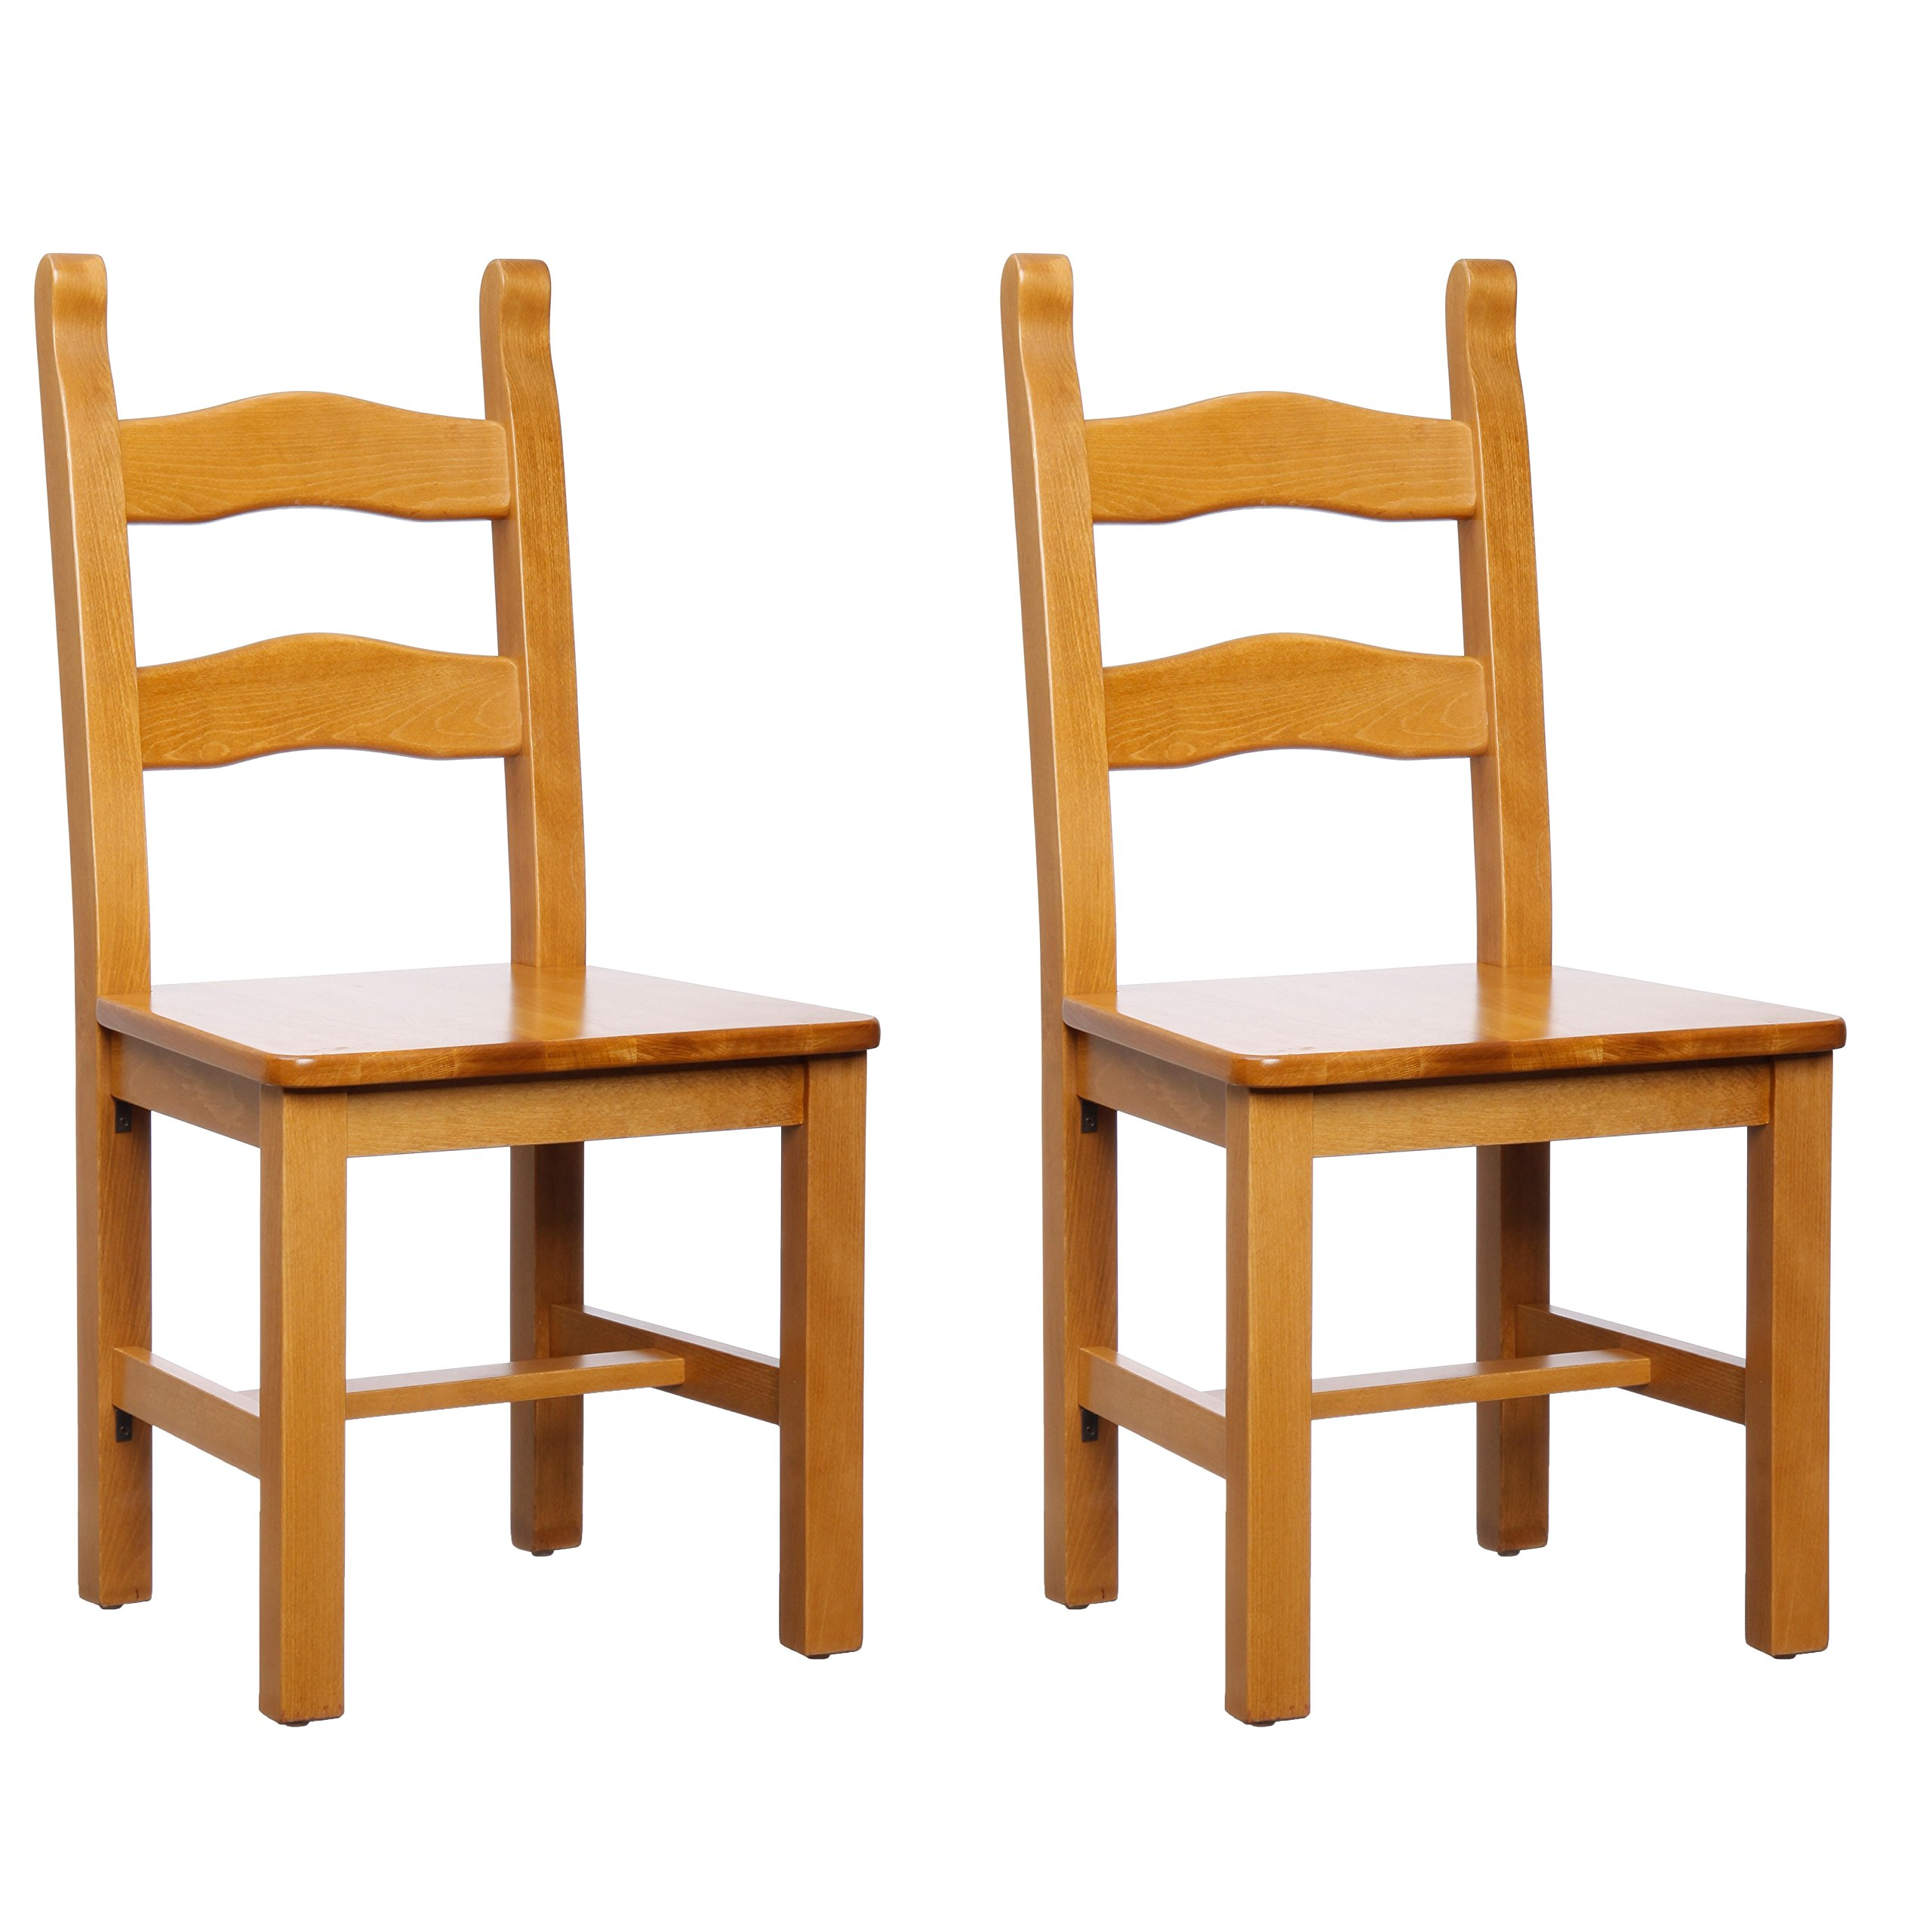 Beechwood Mountain Dining Chairs, Dining Room Sets, Kitchen Furniture, Kitchen Table Chairs